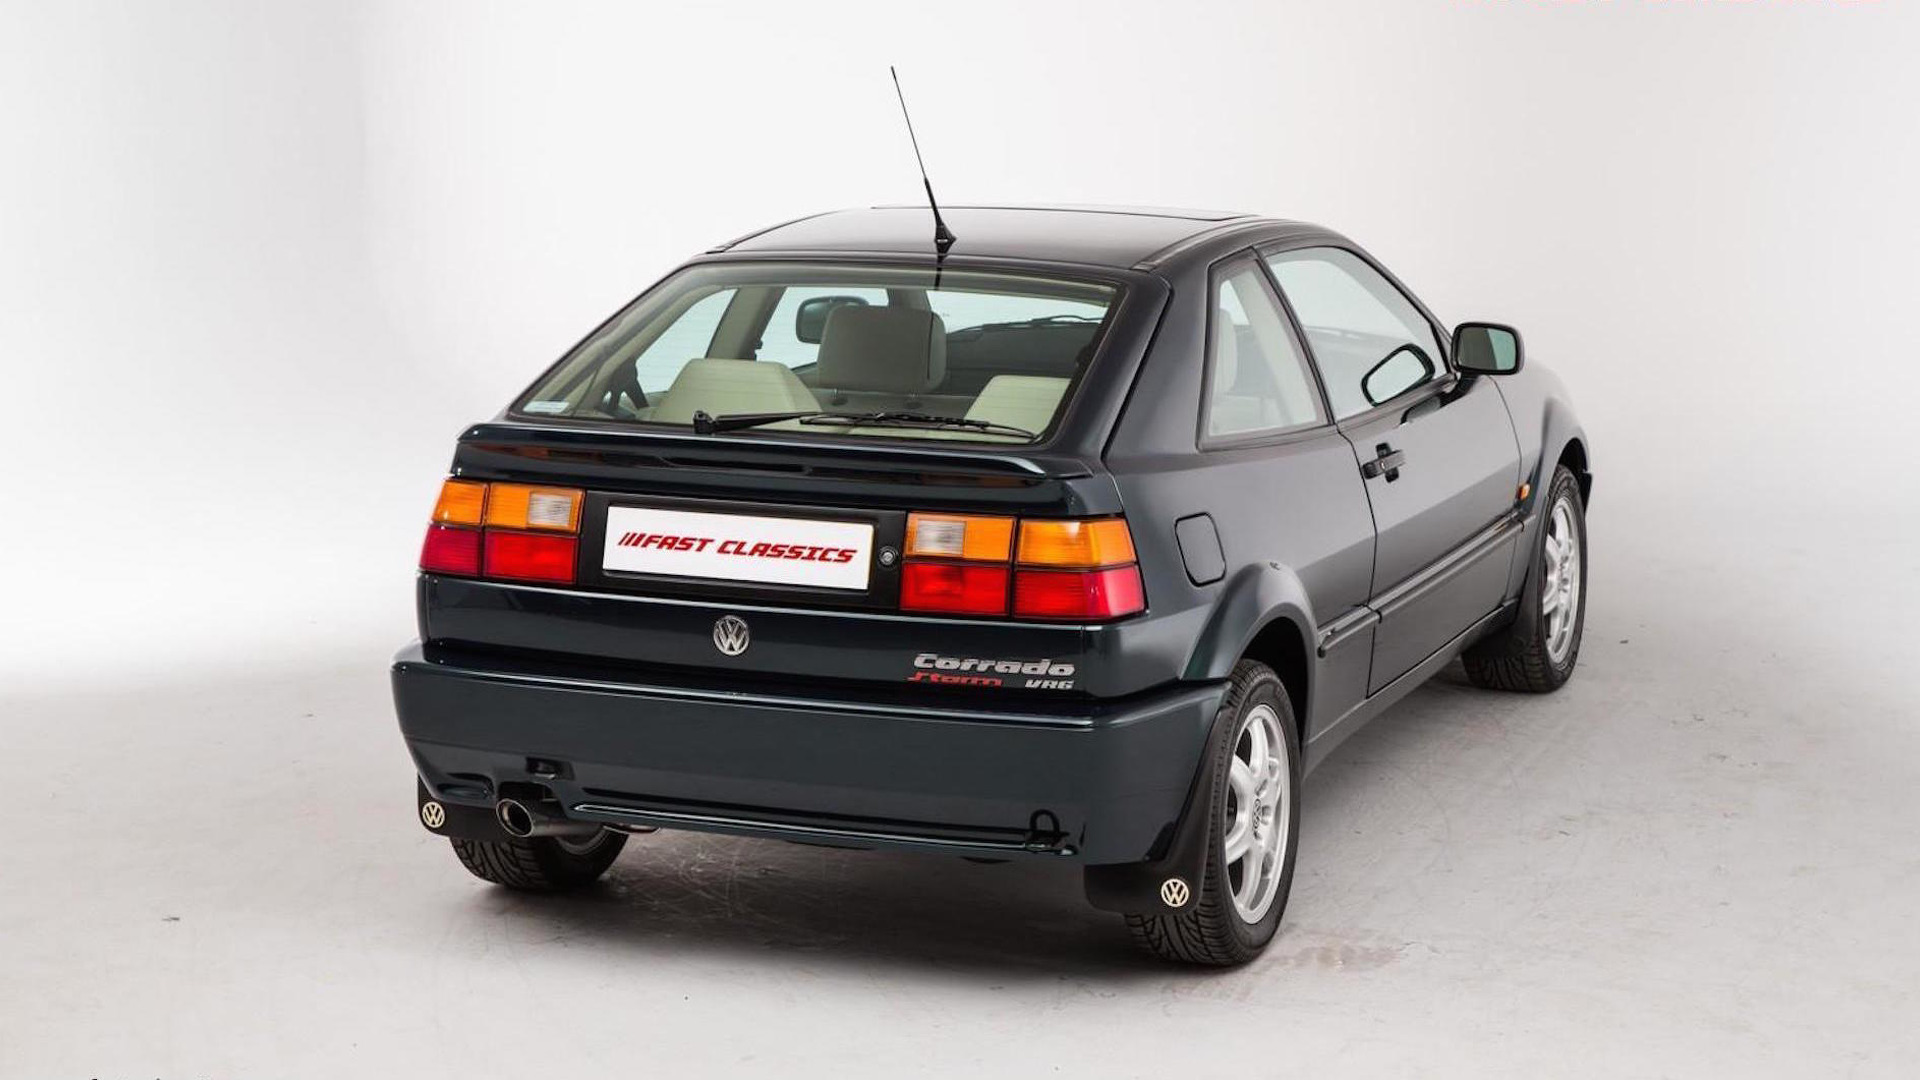 Own This Concours Winning Vw Corrado Vr6 Storm